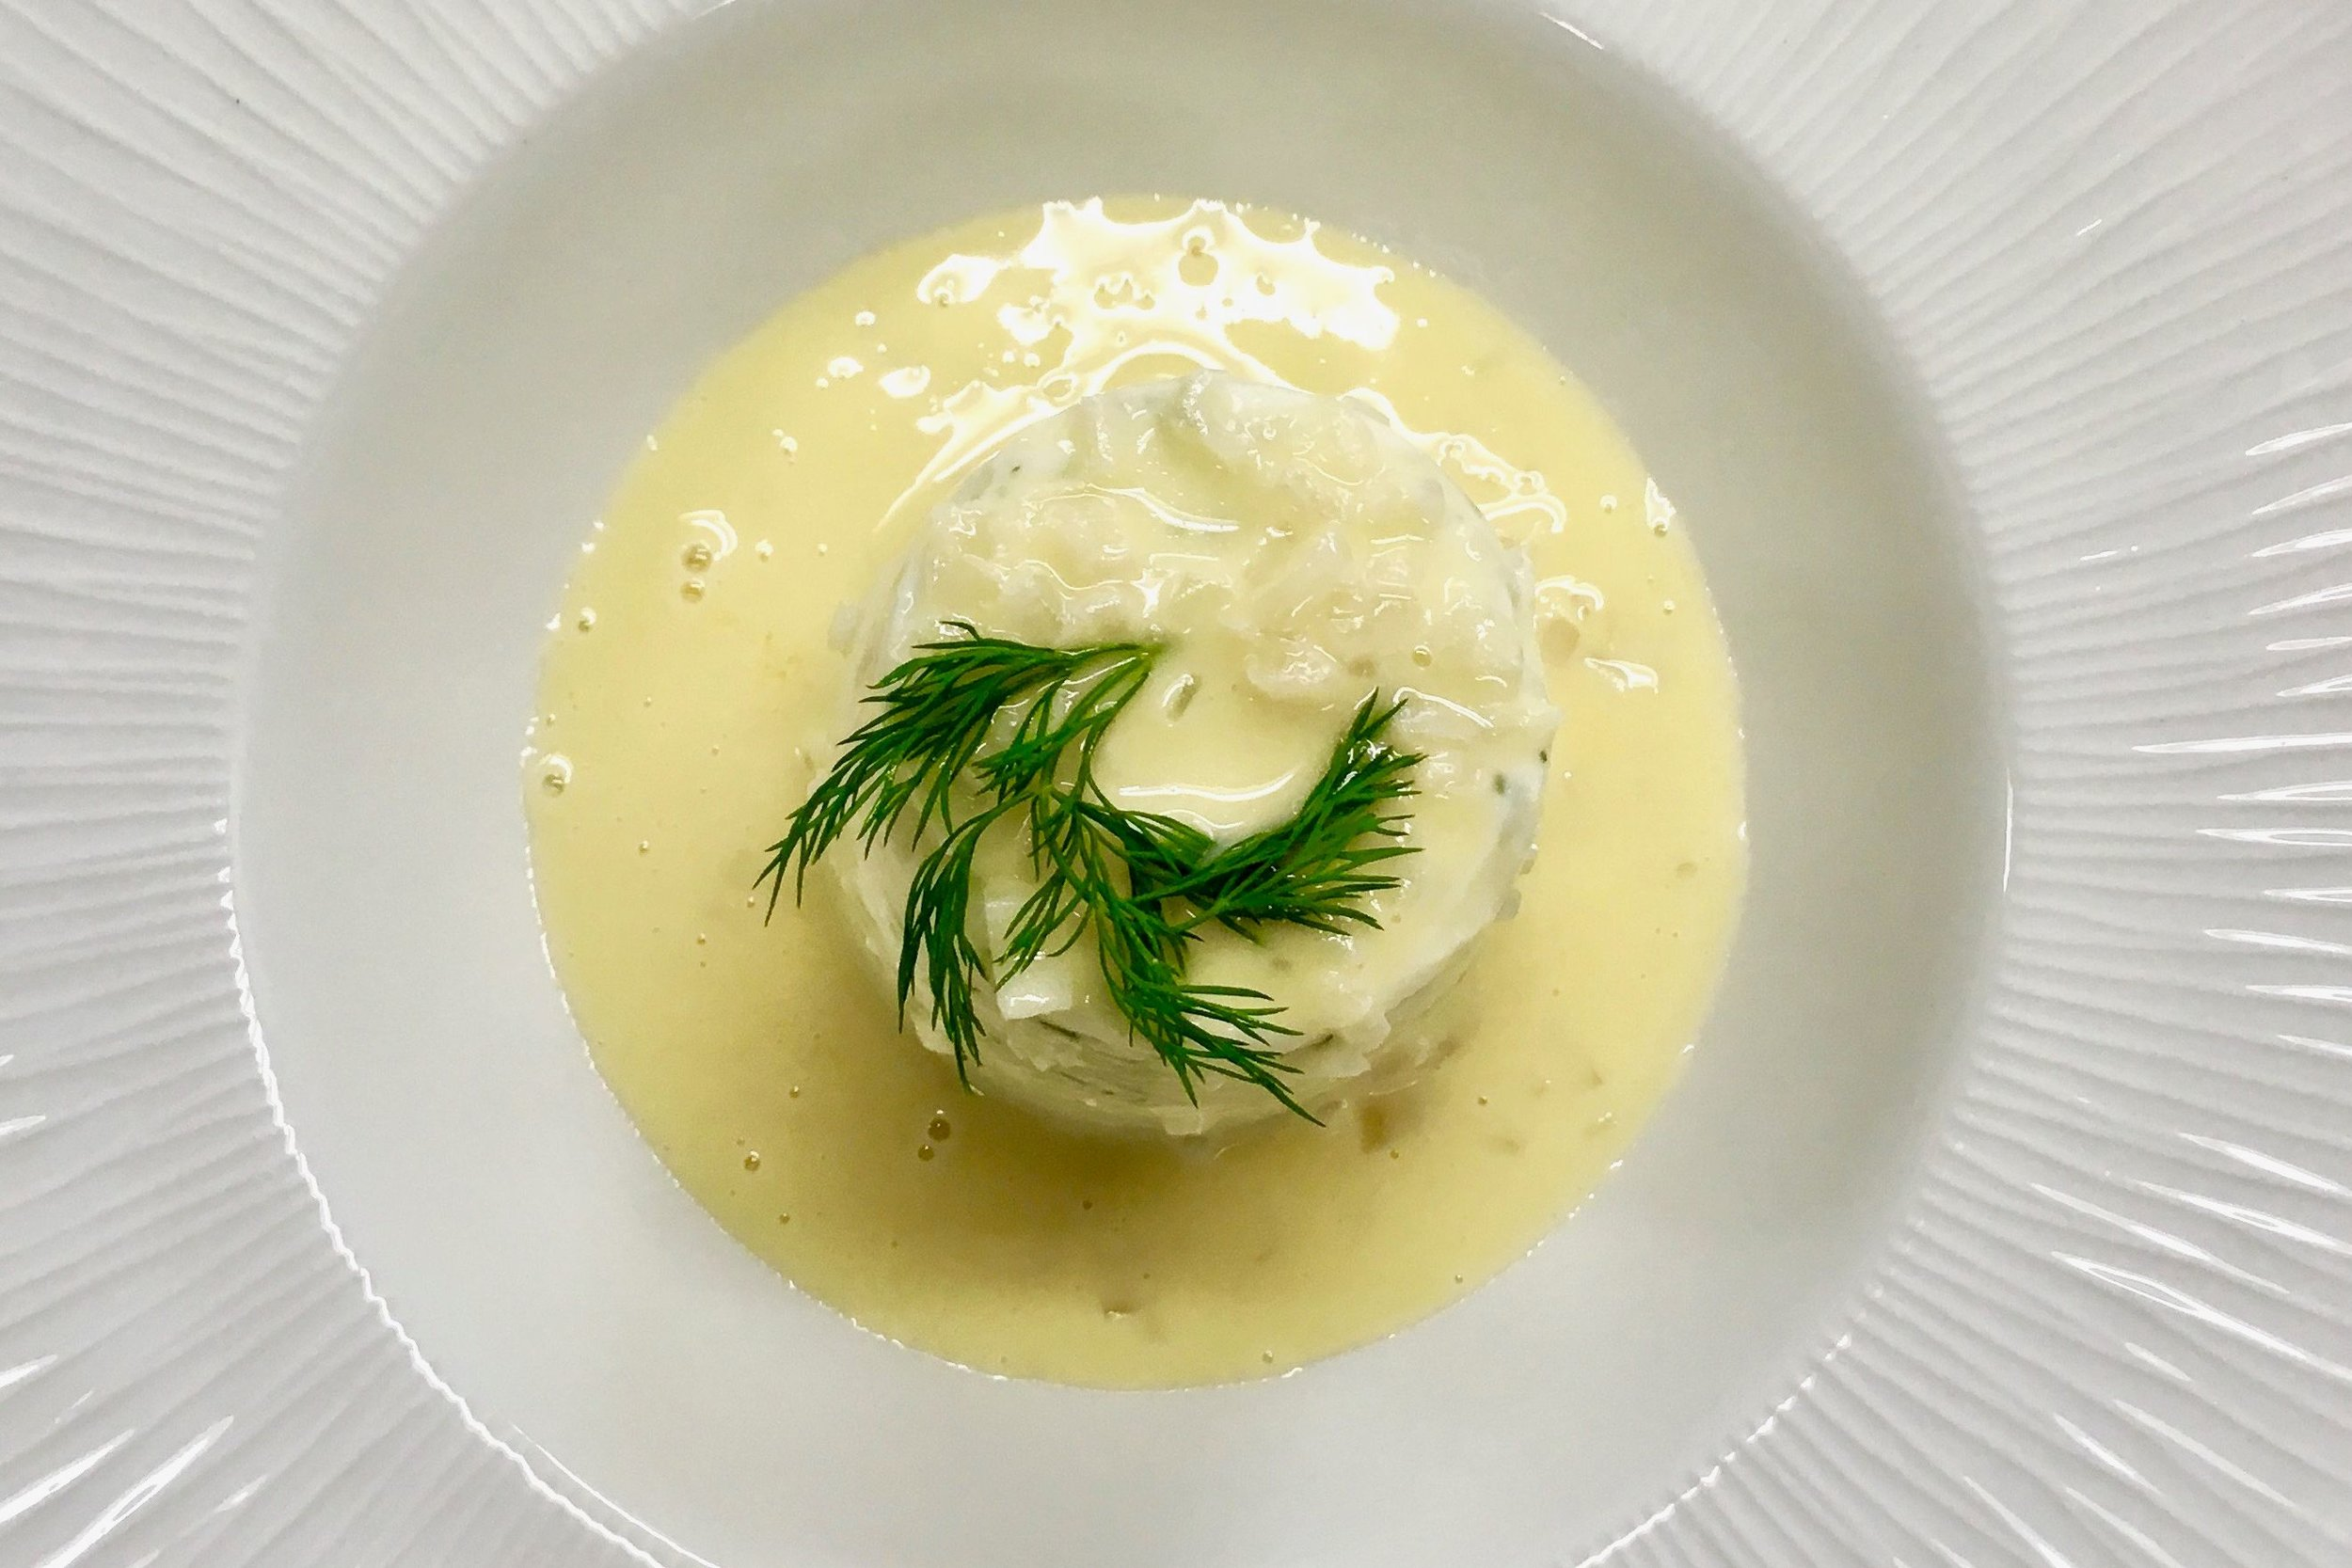 Chef's warm plaice mousse with dill and white wine sauce